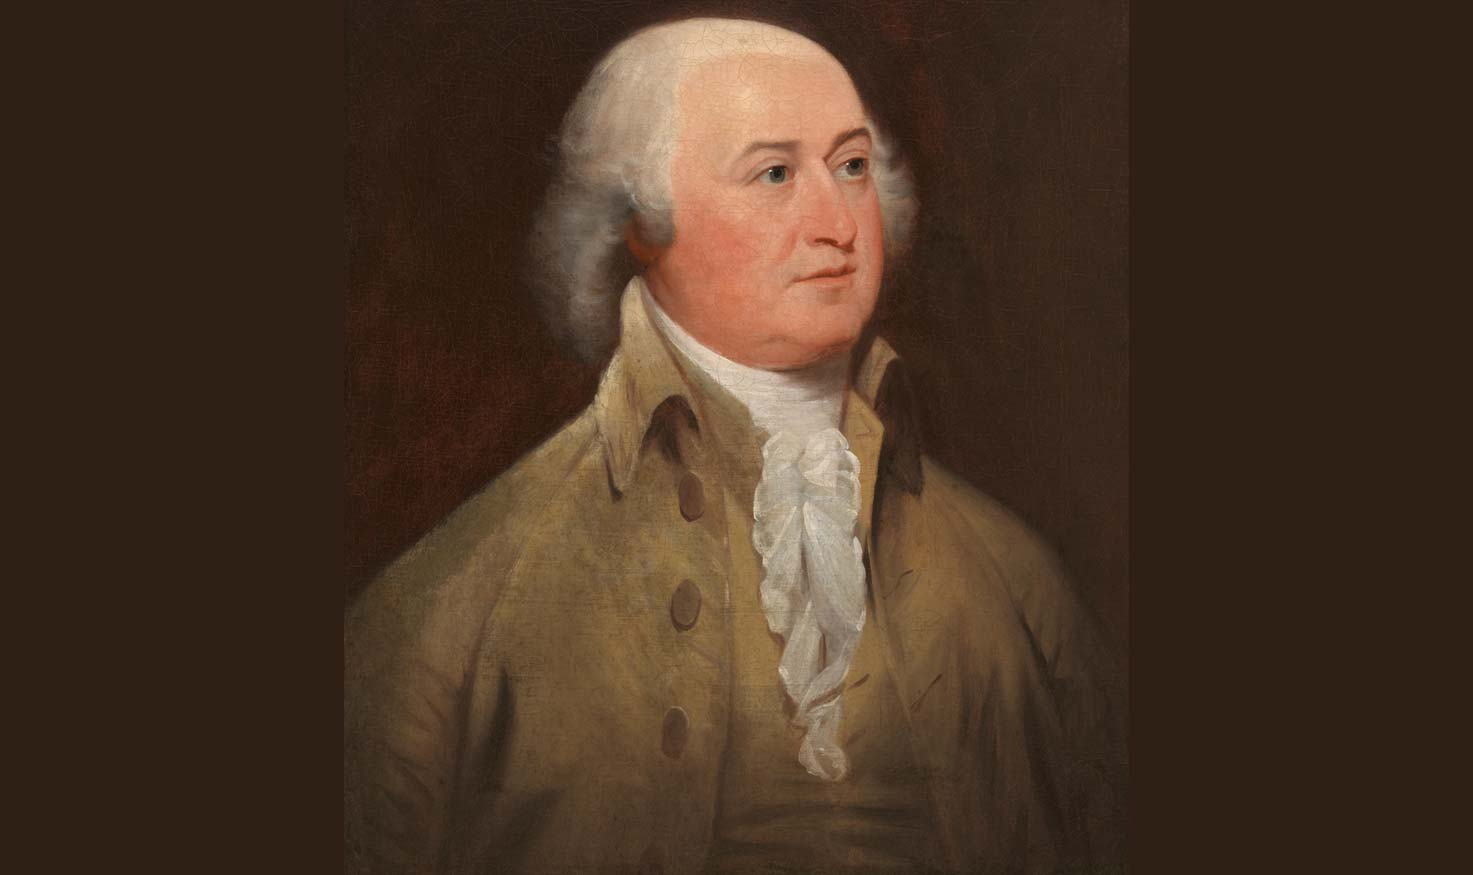 Portrait of John Adams facing right